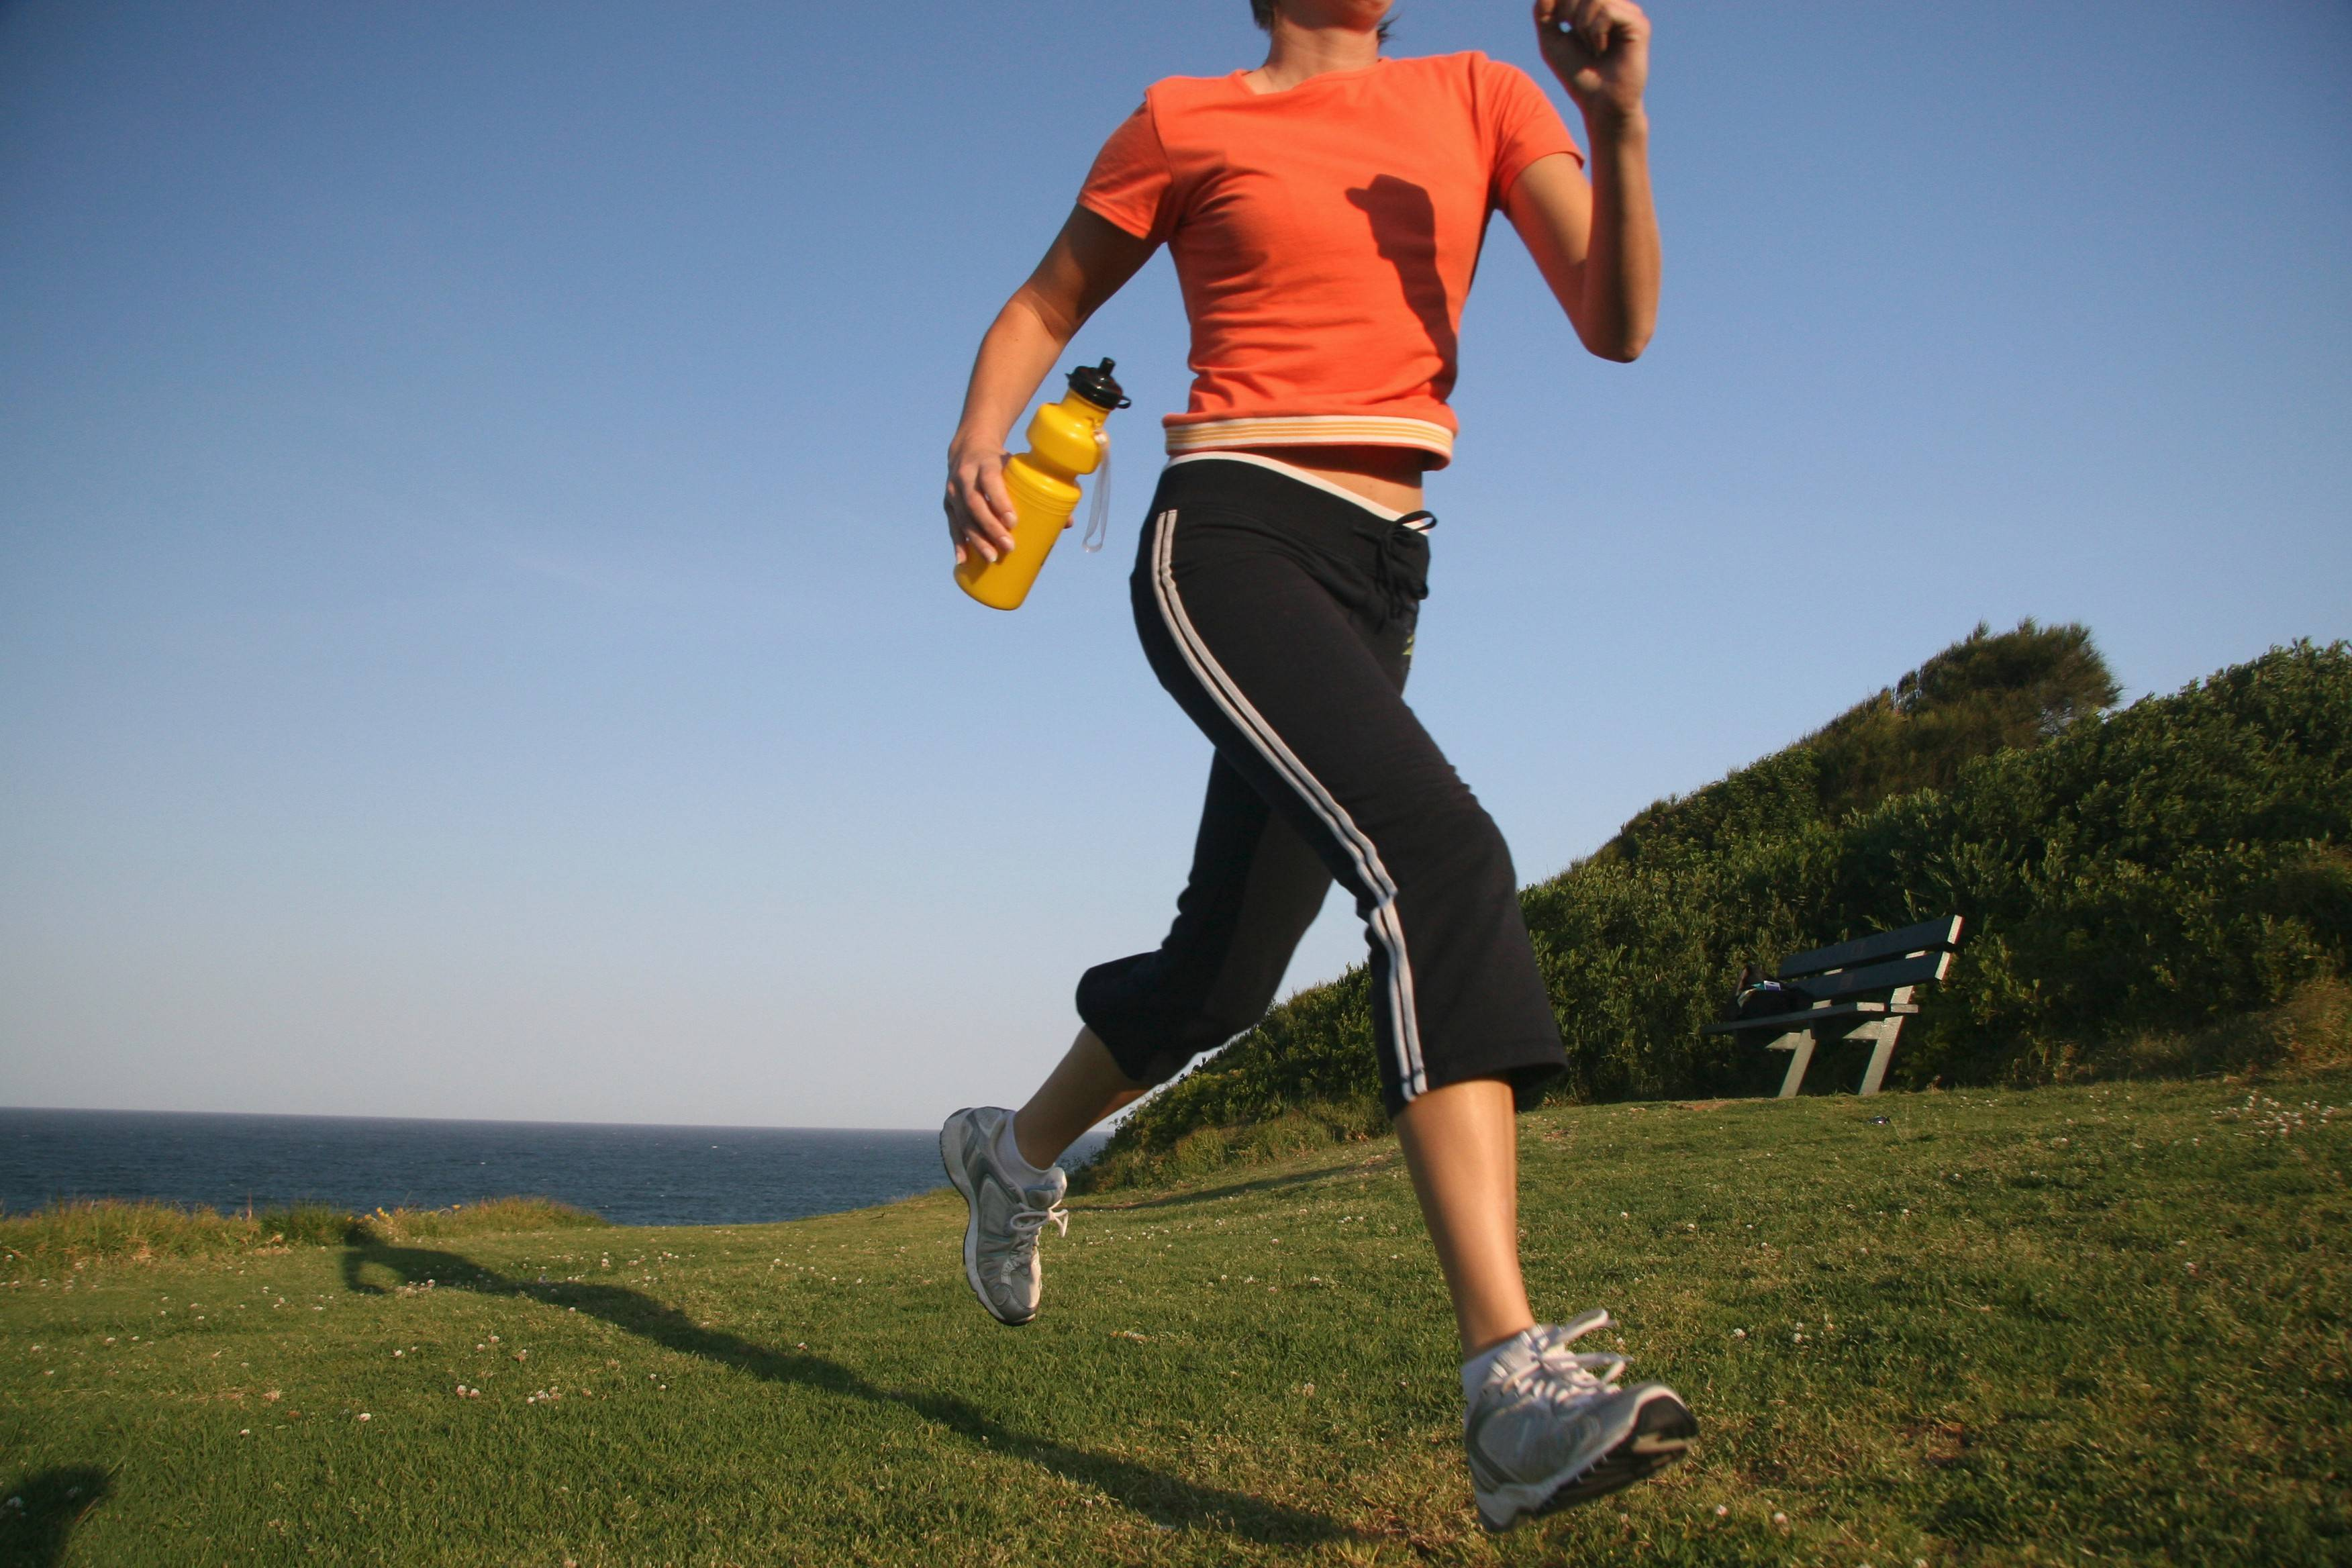 Carrying a water bottle when you run could be affecting your stride and slowing you down.